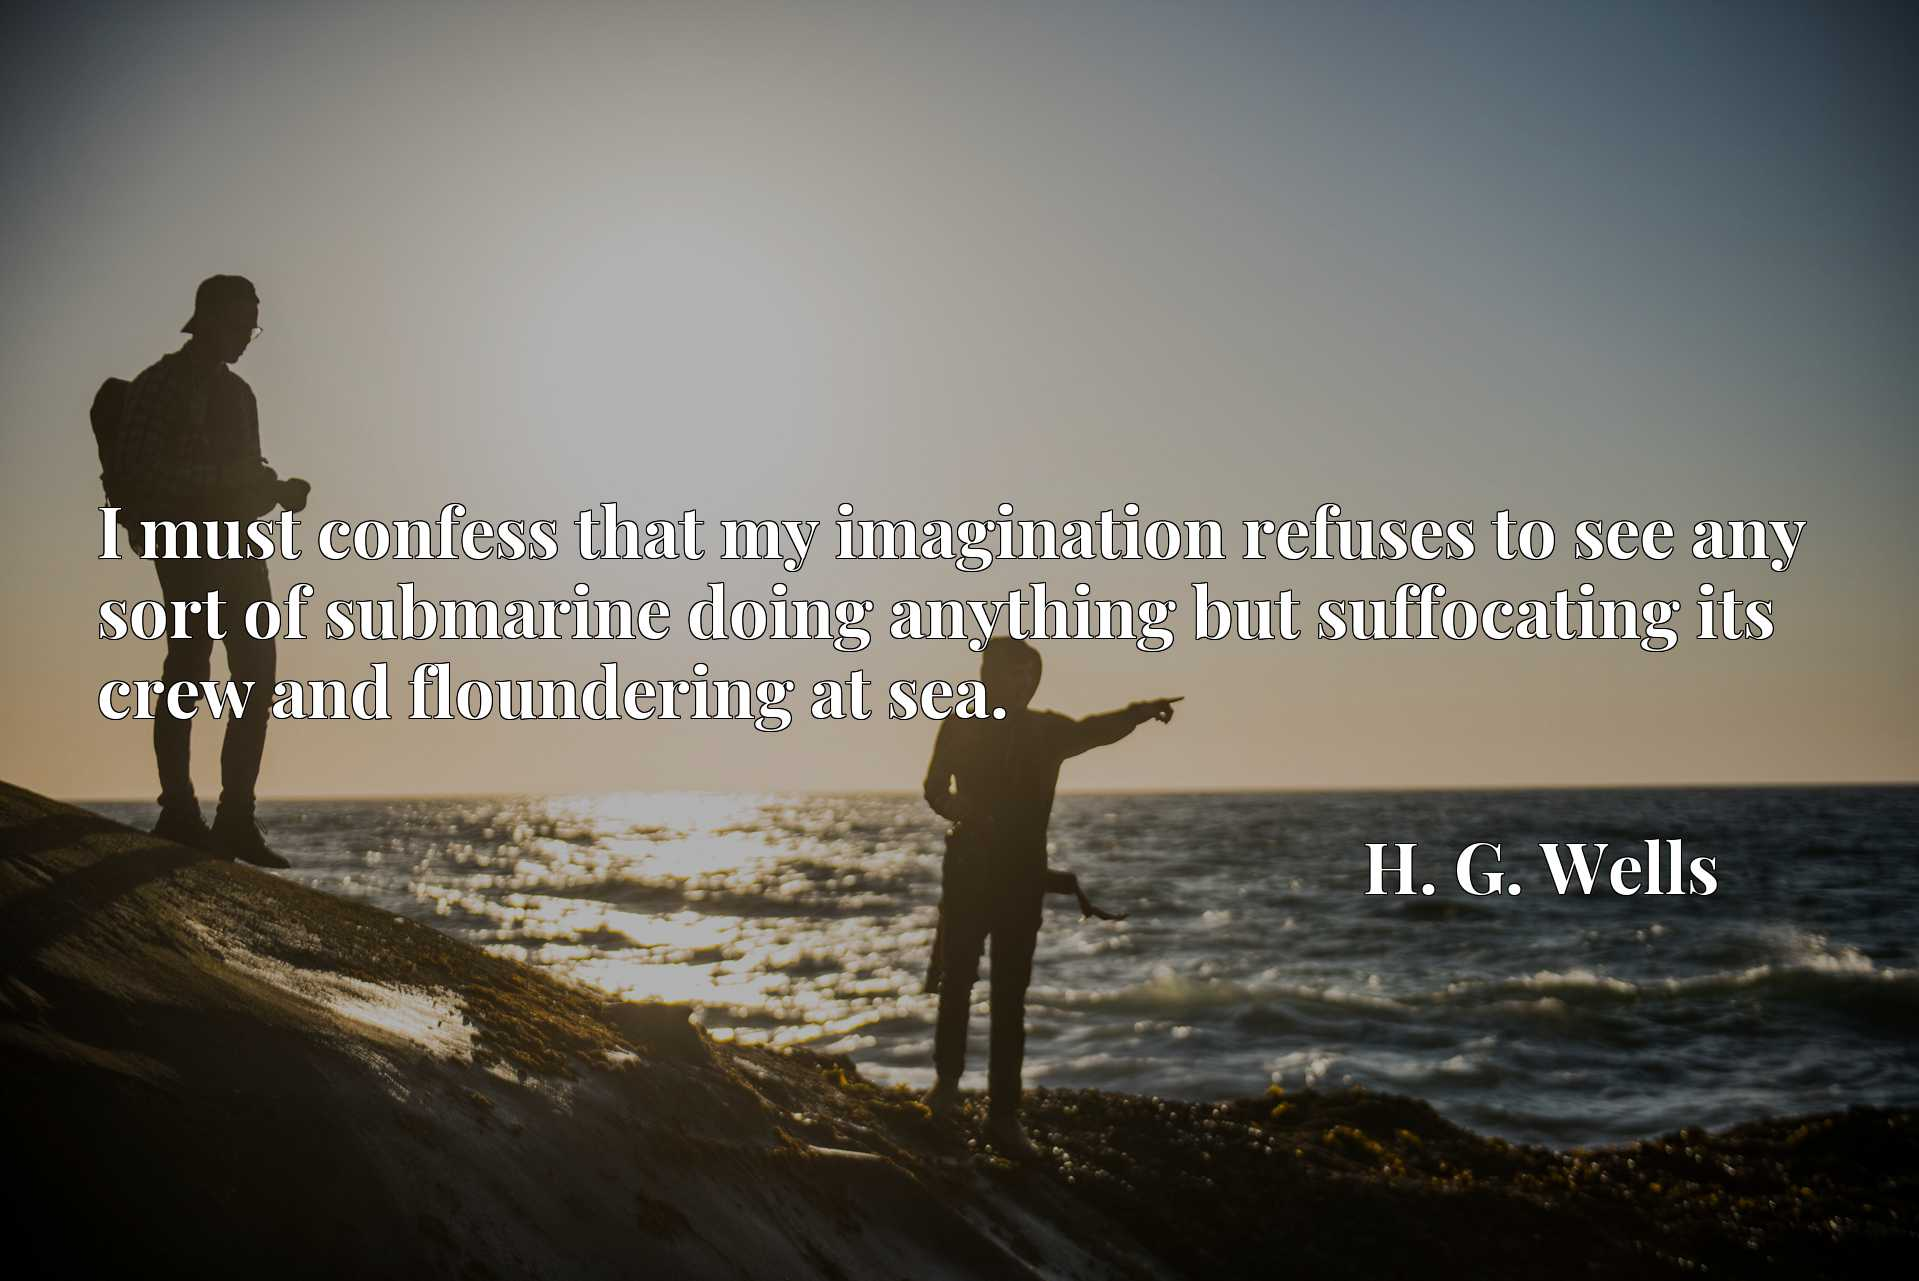 Quote Picture :I must confess that my imagination refuses to see any sort of submarine doing anything but suffocating its crew and floundering at sea.